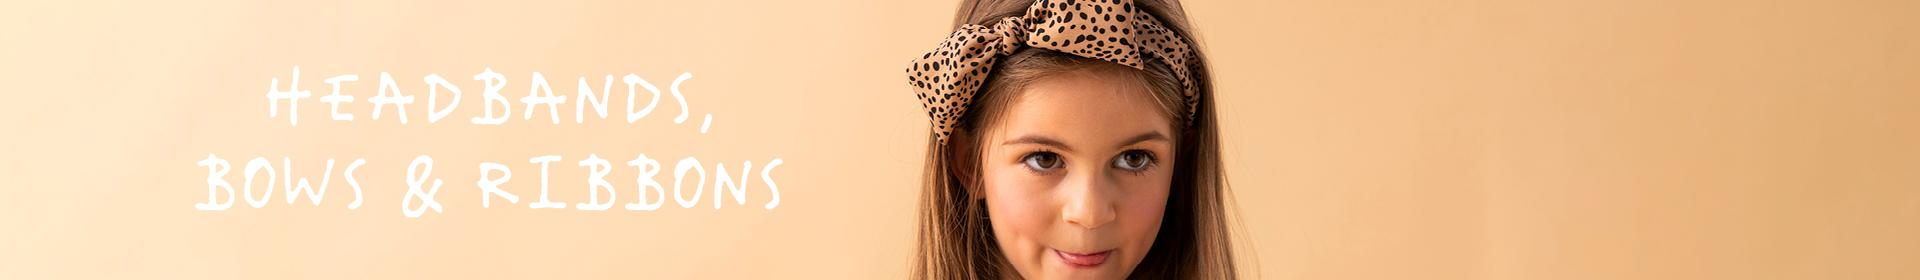 The Trybe Accessories: Headbands, bows & ribbons